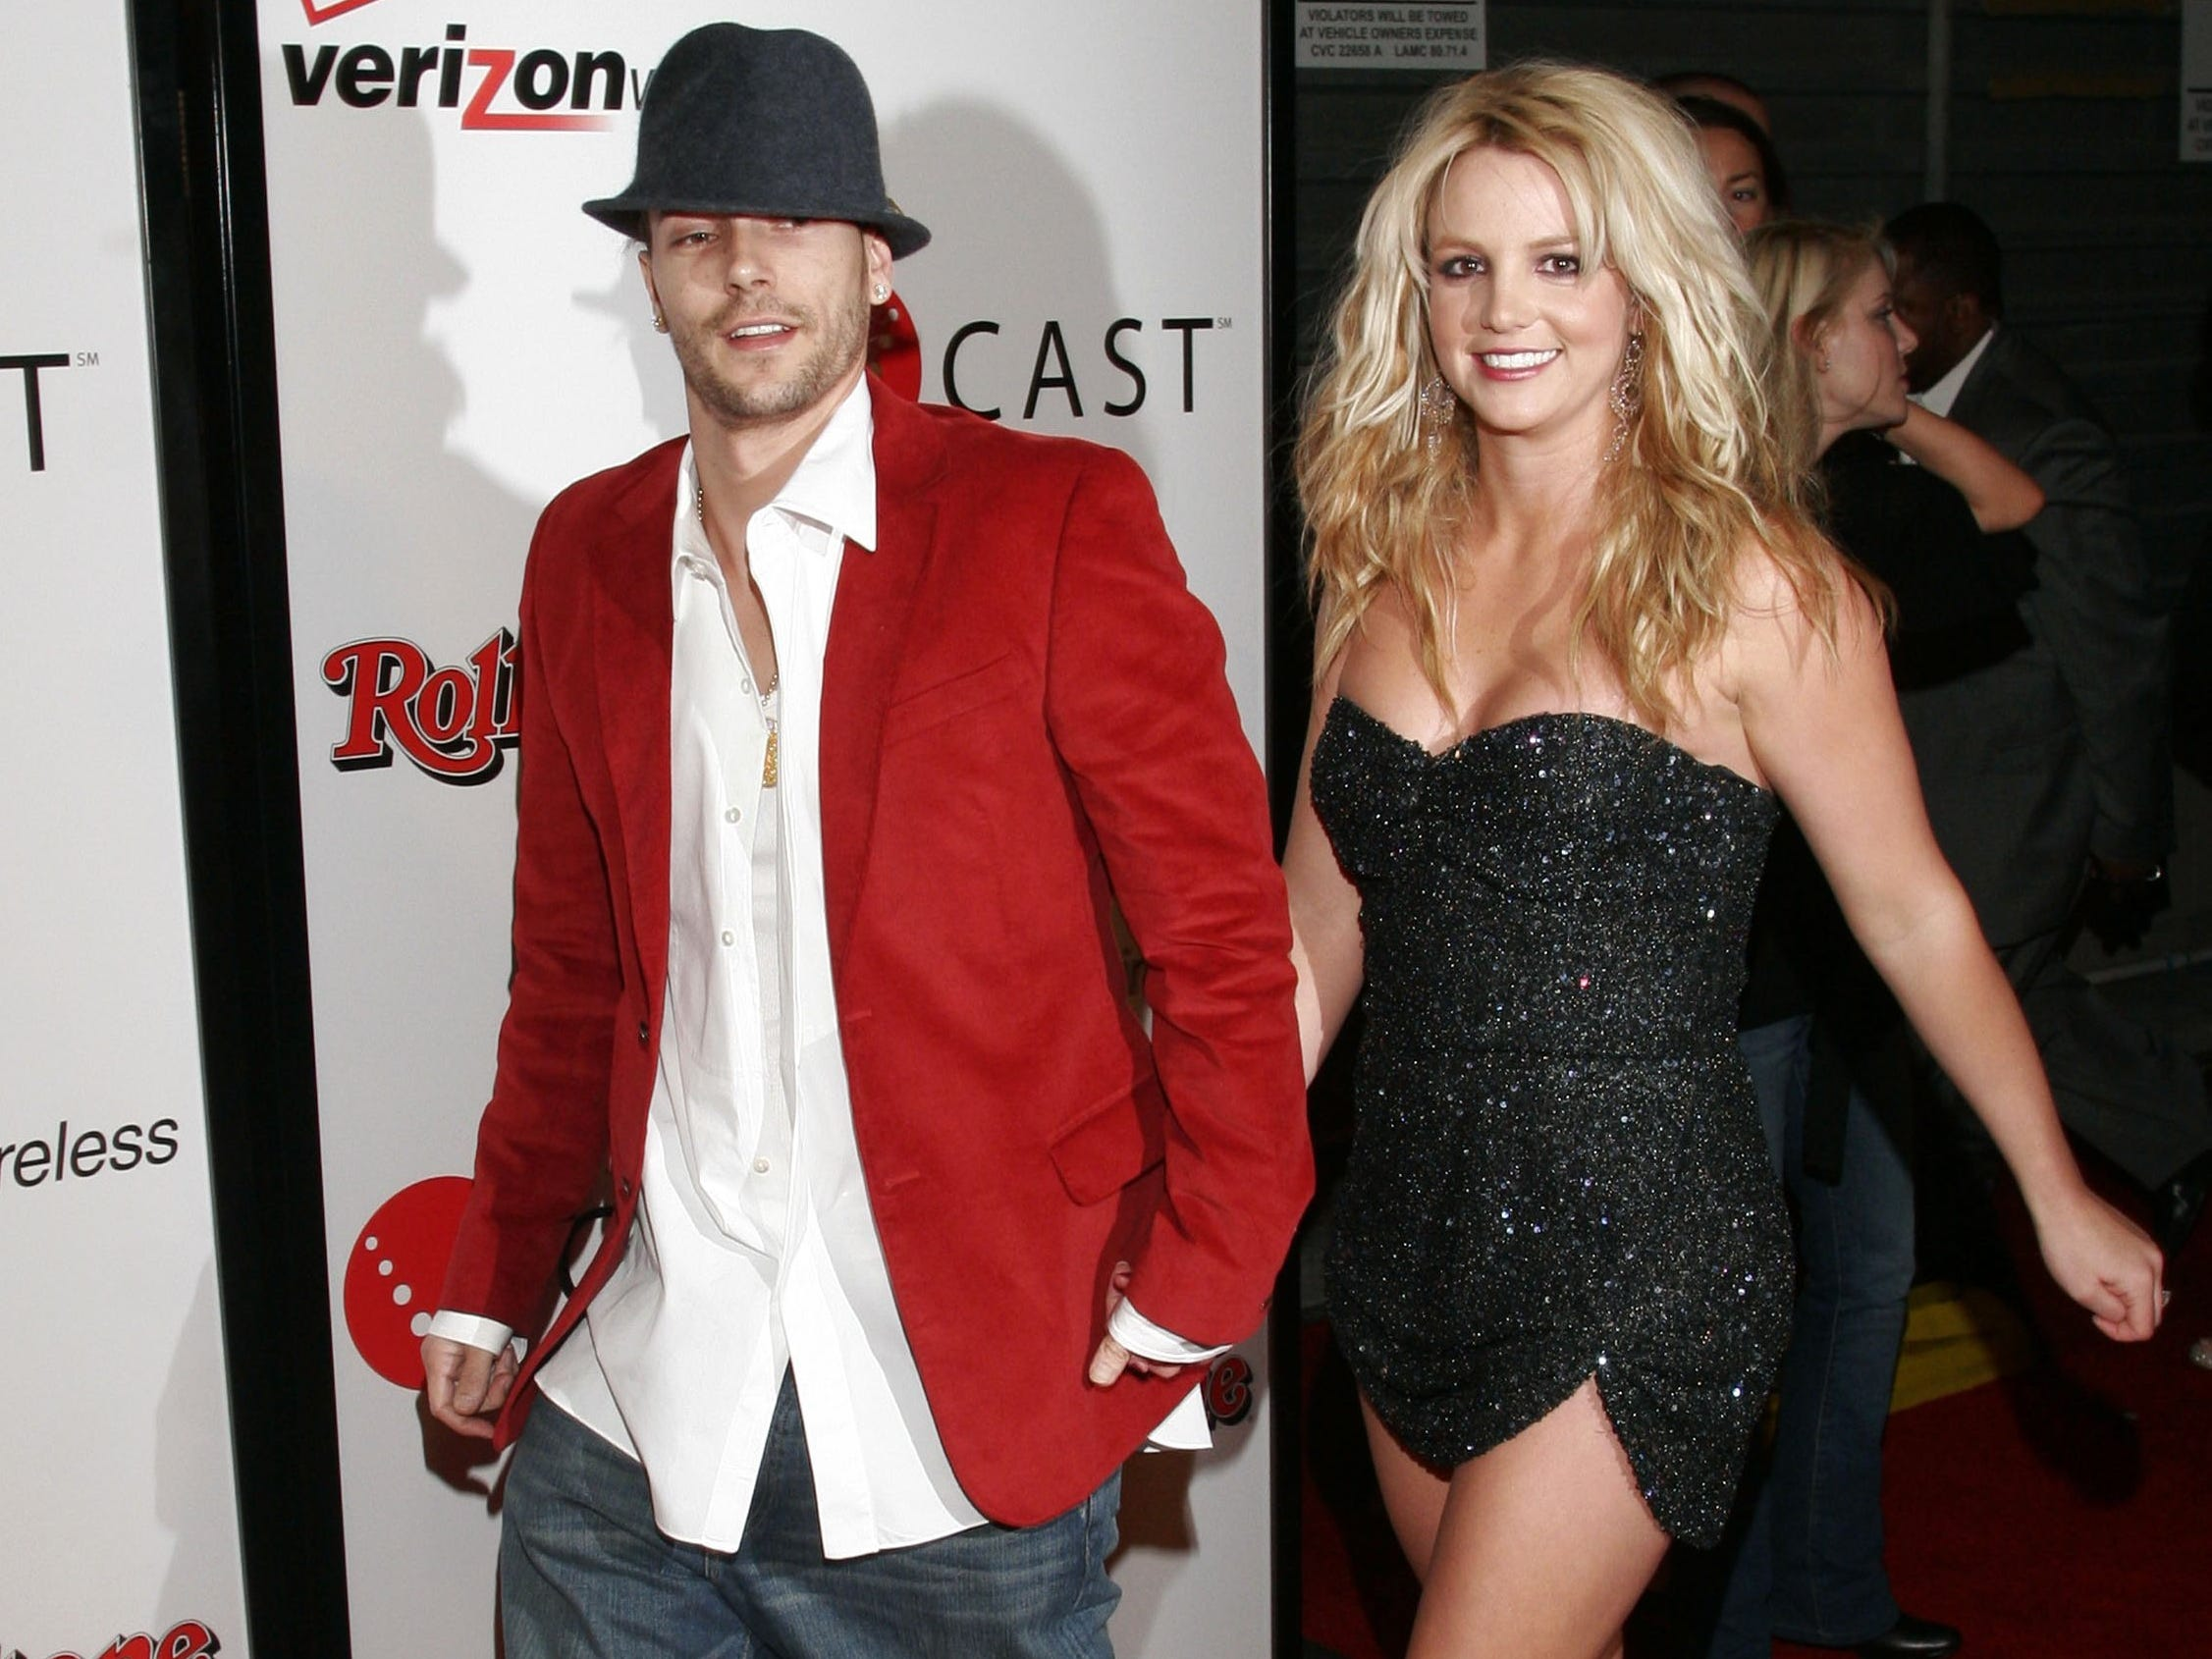 HOLLYWOOD - FEBRUARY 06:  (FILE PHOTO) Musicians Britney Spears and Kevin Federline arrive at the 2006 Grammy Nominees party with Kanye West, hosted By Verizon Wireless and Rolling Stone Magazine at the Avalon Hollywood, on February 6, 2005 in Hollywood, California.  Britney Spears reportedly gave birth to a baby boy, her second child with Federline, in the early hours of September 12, 2006. (Photo by Matthew Simmons/Getty Images for Rolling Stone) *** Local Caption *** Britney Spears;Kevin Federline GTY ID: 26364MS006_Rolling_Stone